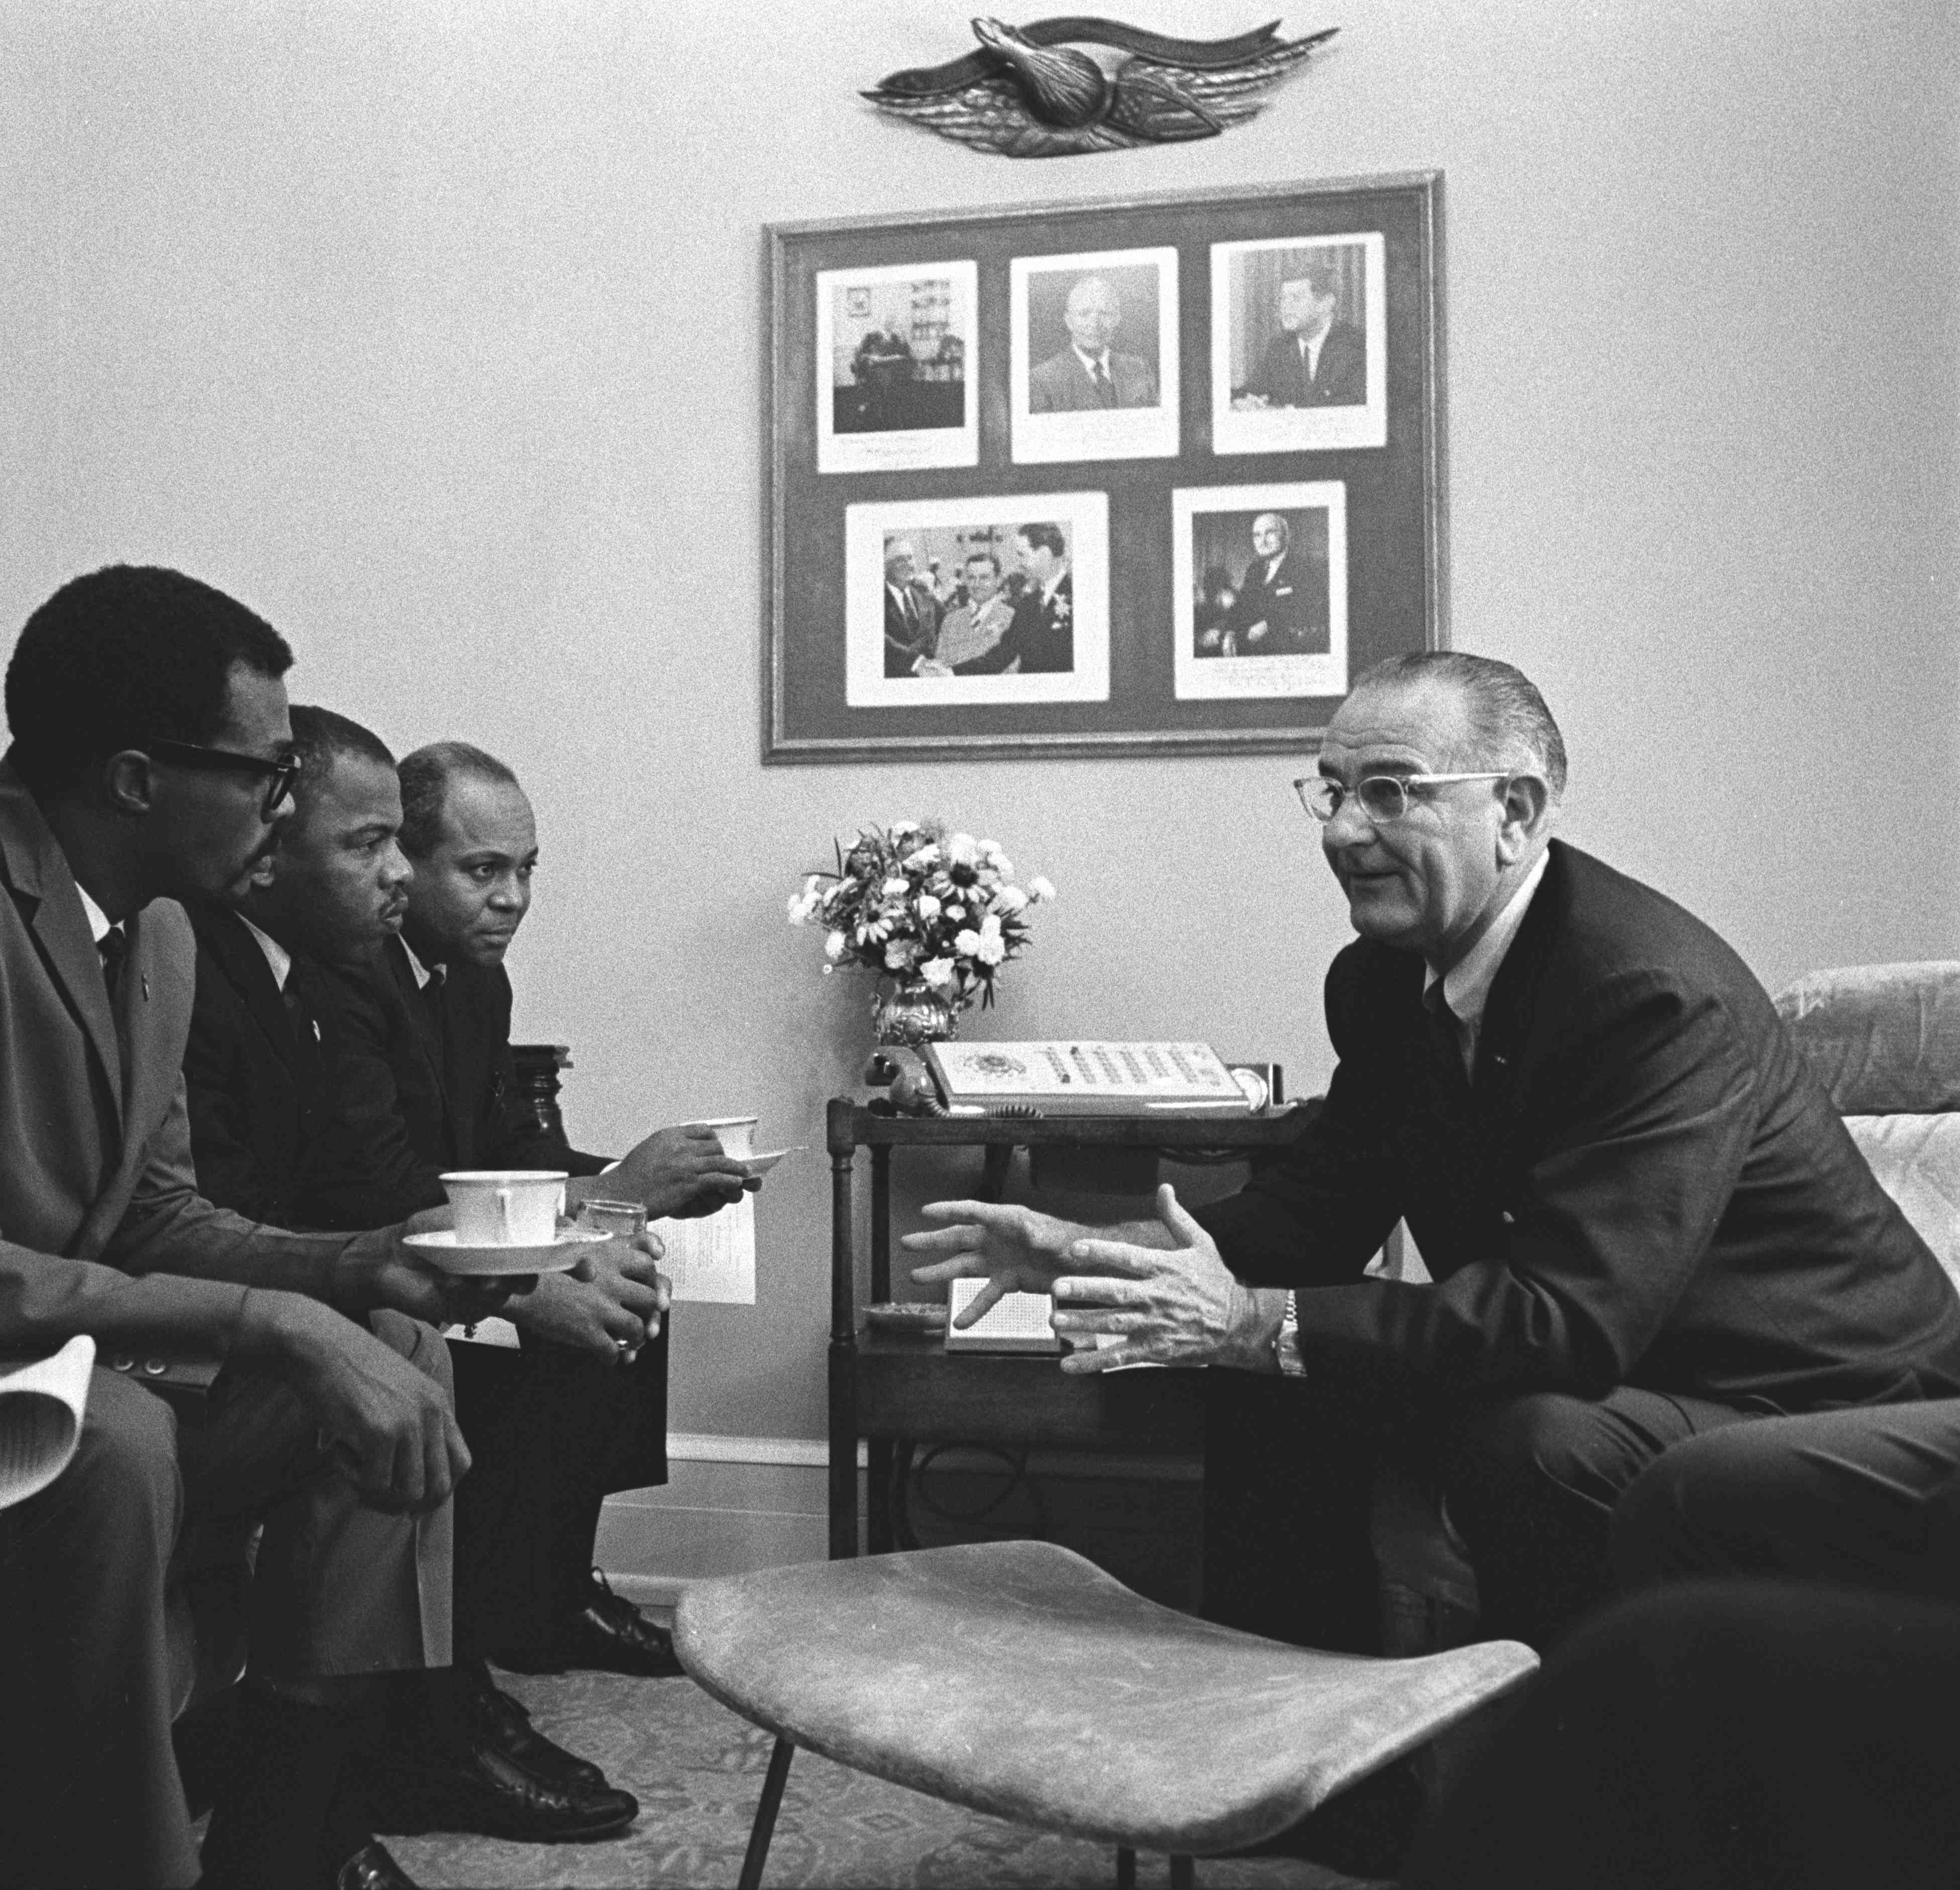 Pres. Lyndon B. Johnson (right) speaking and gesturing as four men seated on couch listen.  (L-R) two unidentified men, John Lewis, James Farmer.